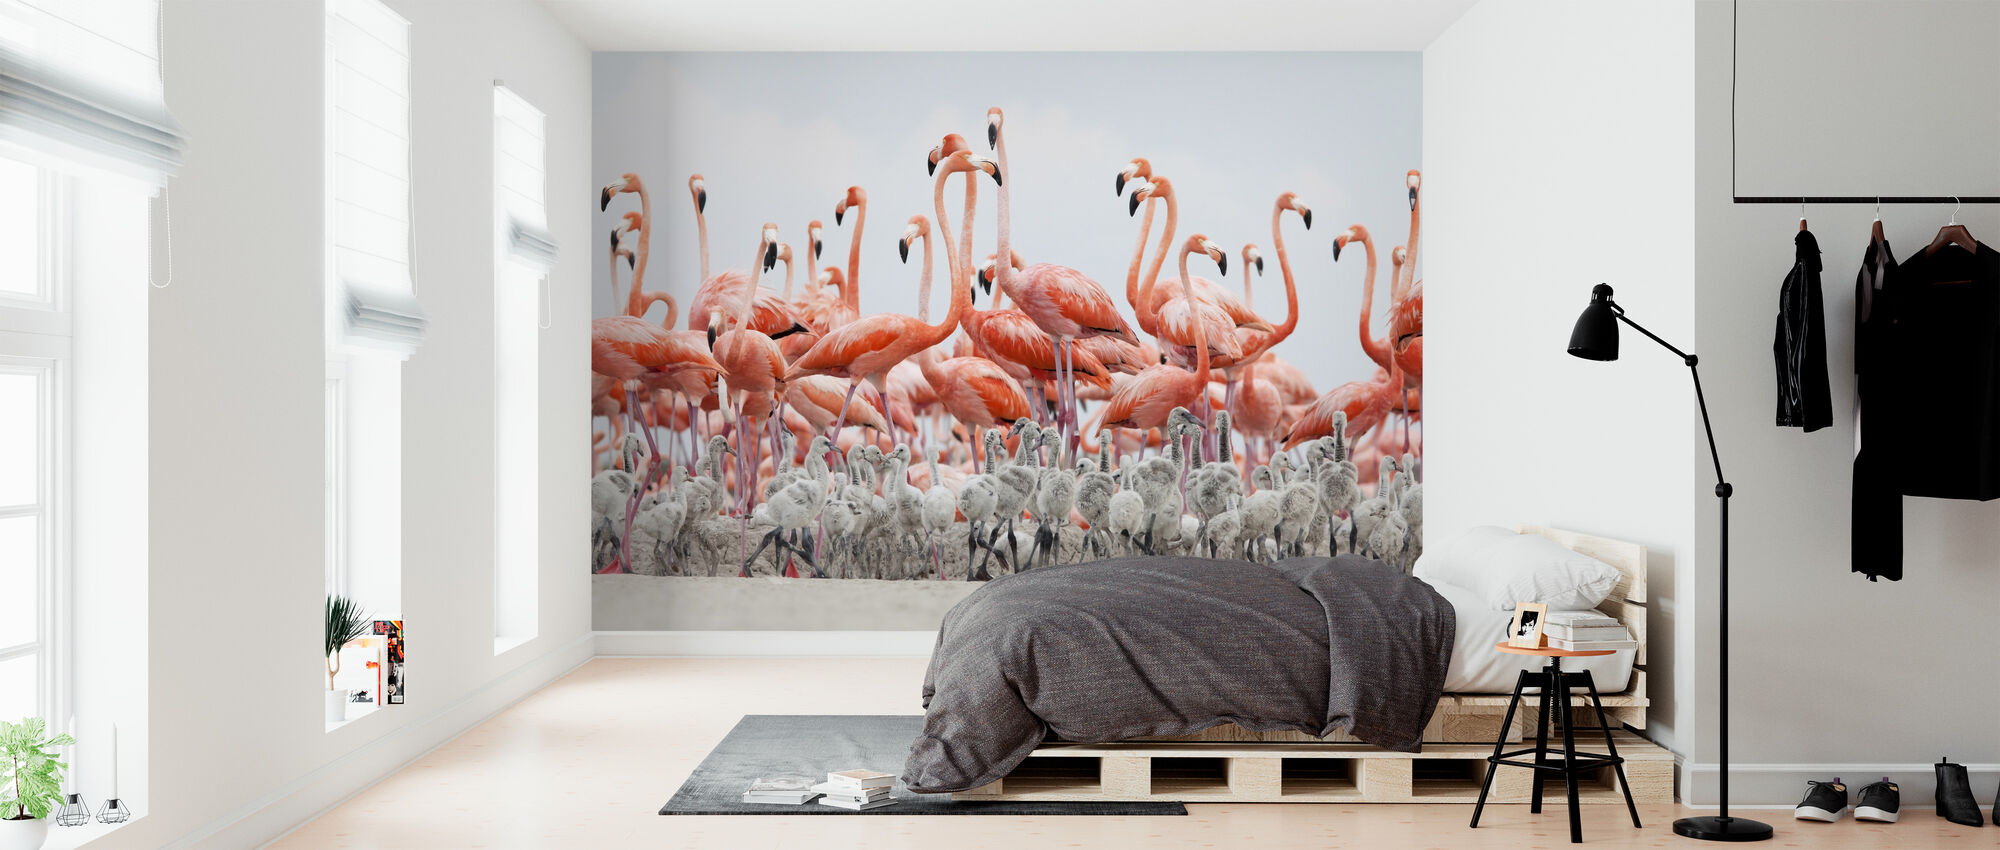 Caribbean Flamingo - Wallpaper - Bedroom